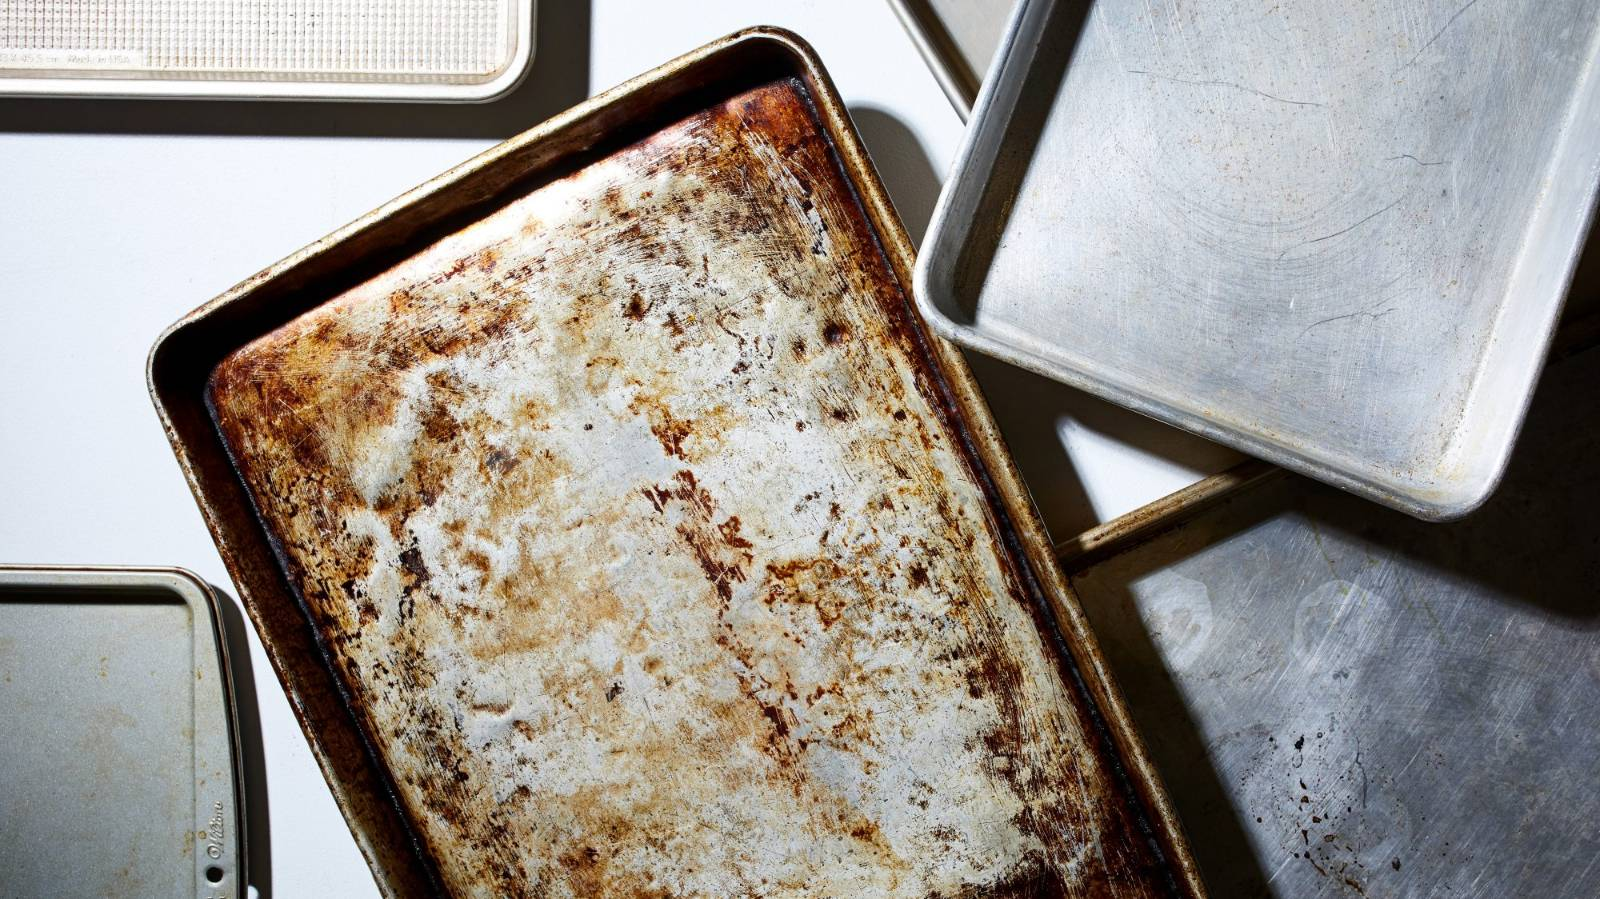 How to clean and care for your baking trays